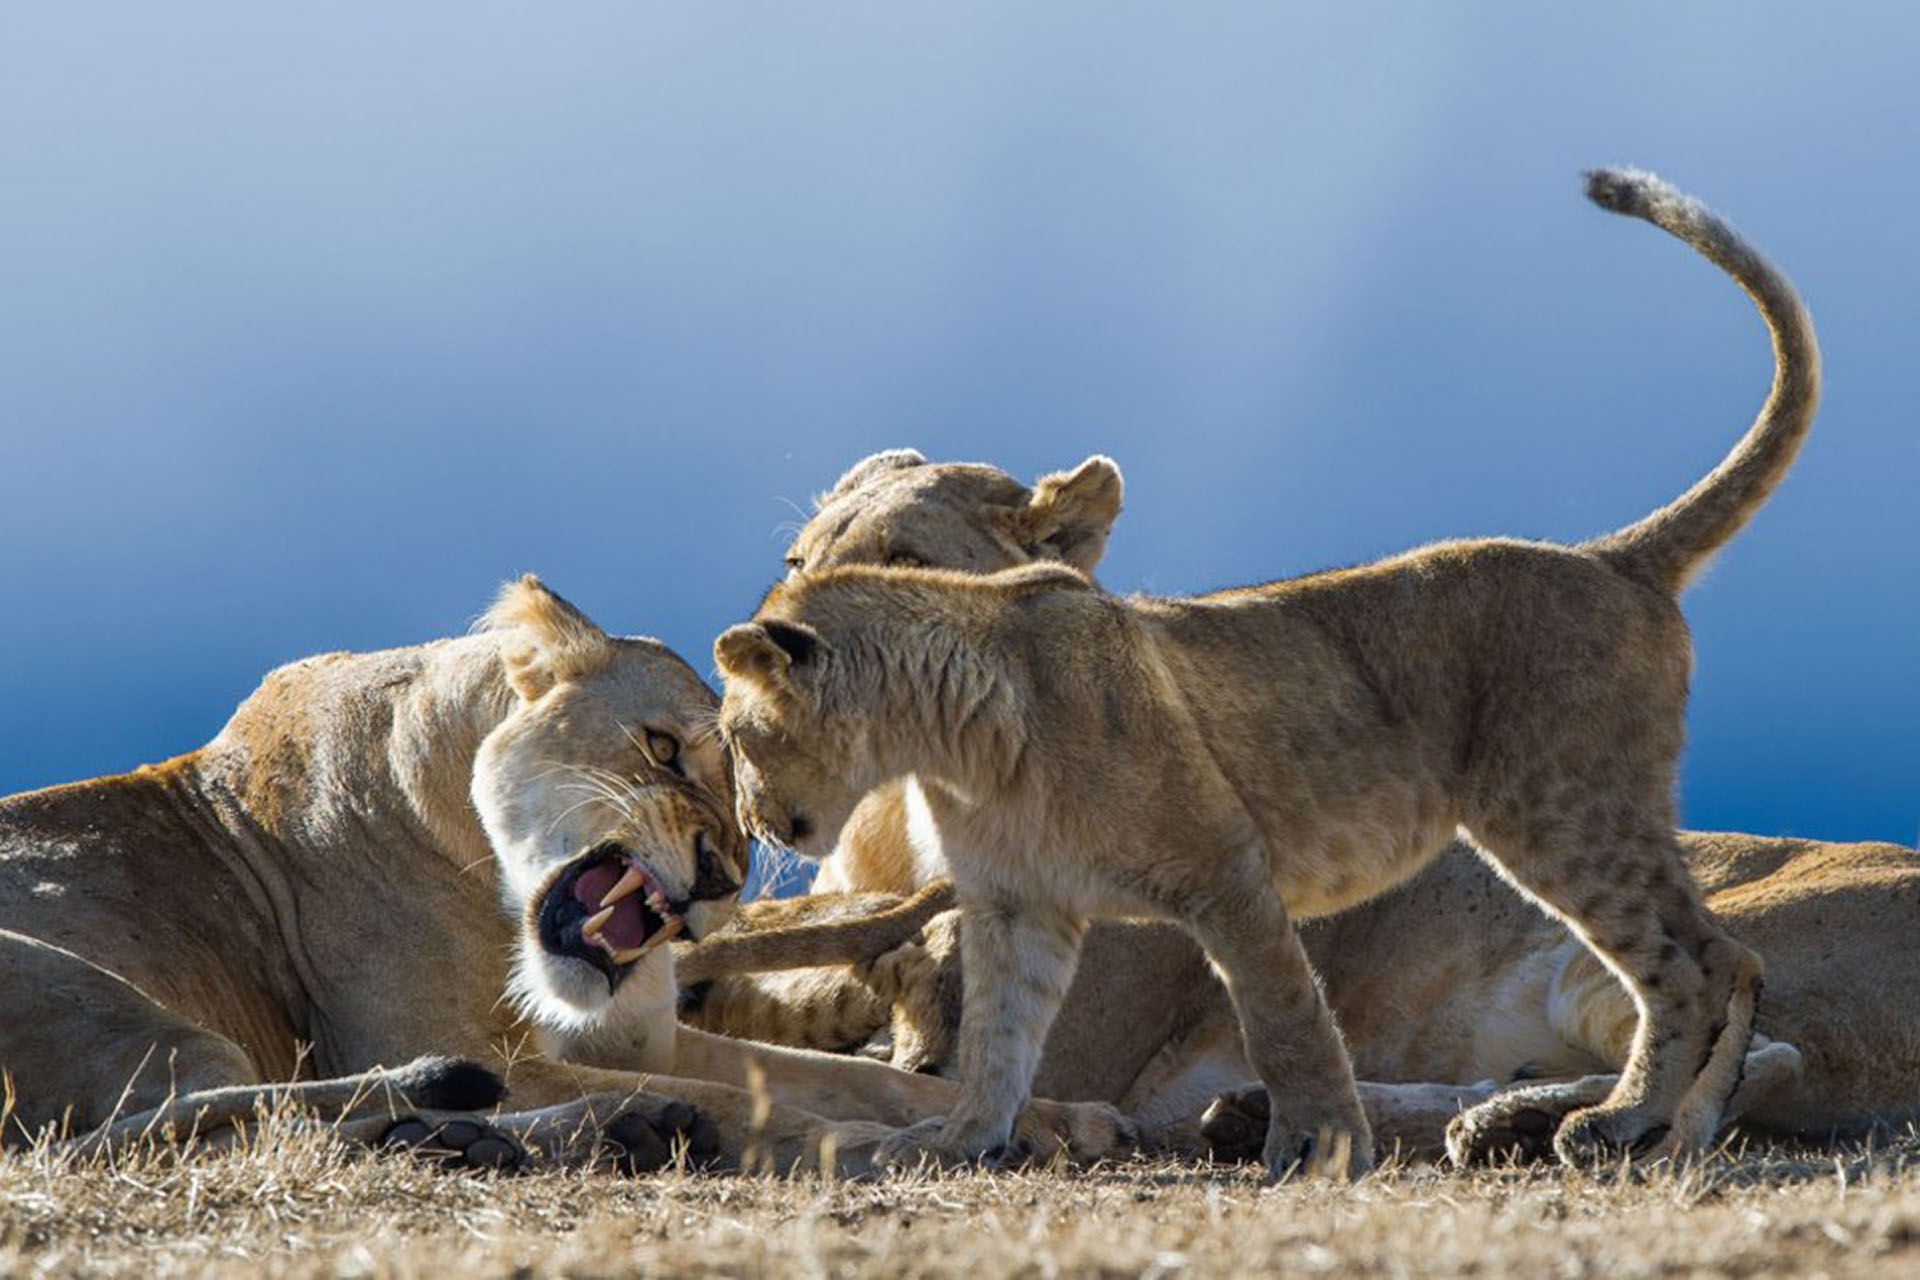 paul-joynson-hicks-photography-signature-photo-safaris-maasai-wanderings-africa-wildlife-lions